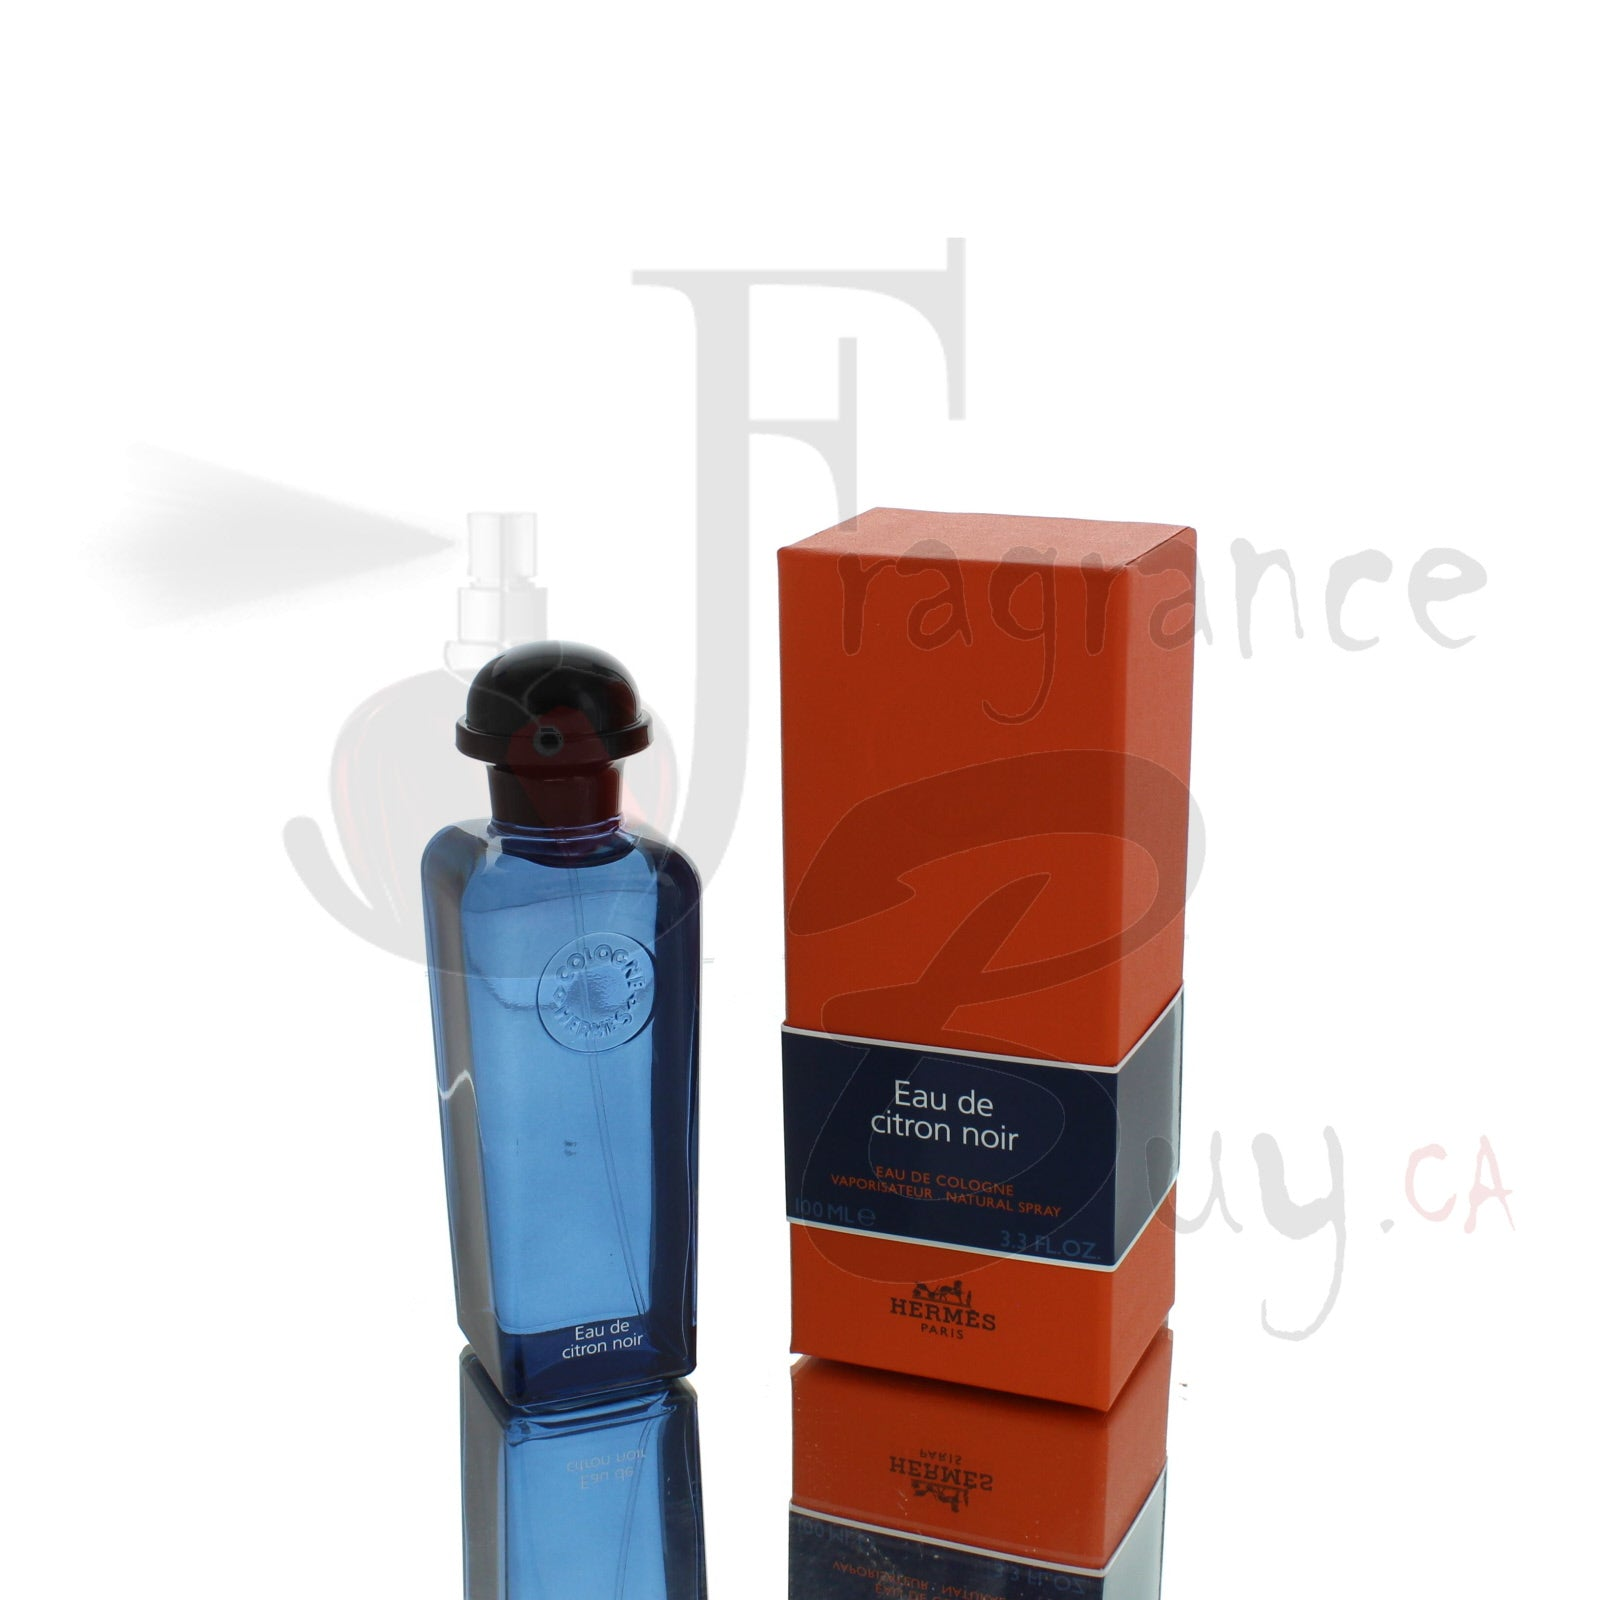 Hermes Eau de Citron Noir For Man/Woman